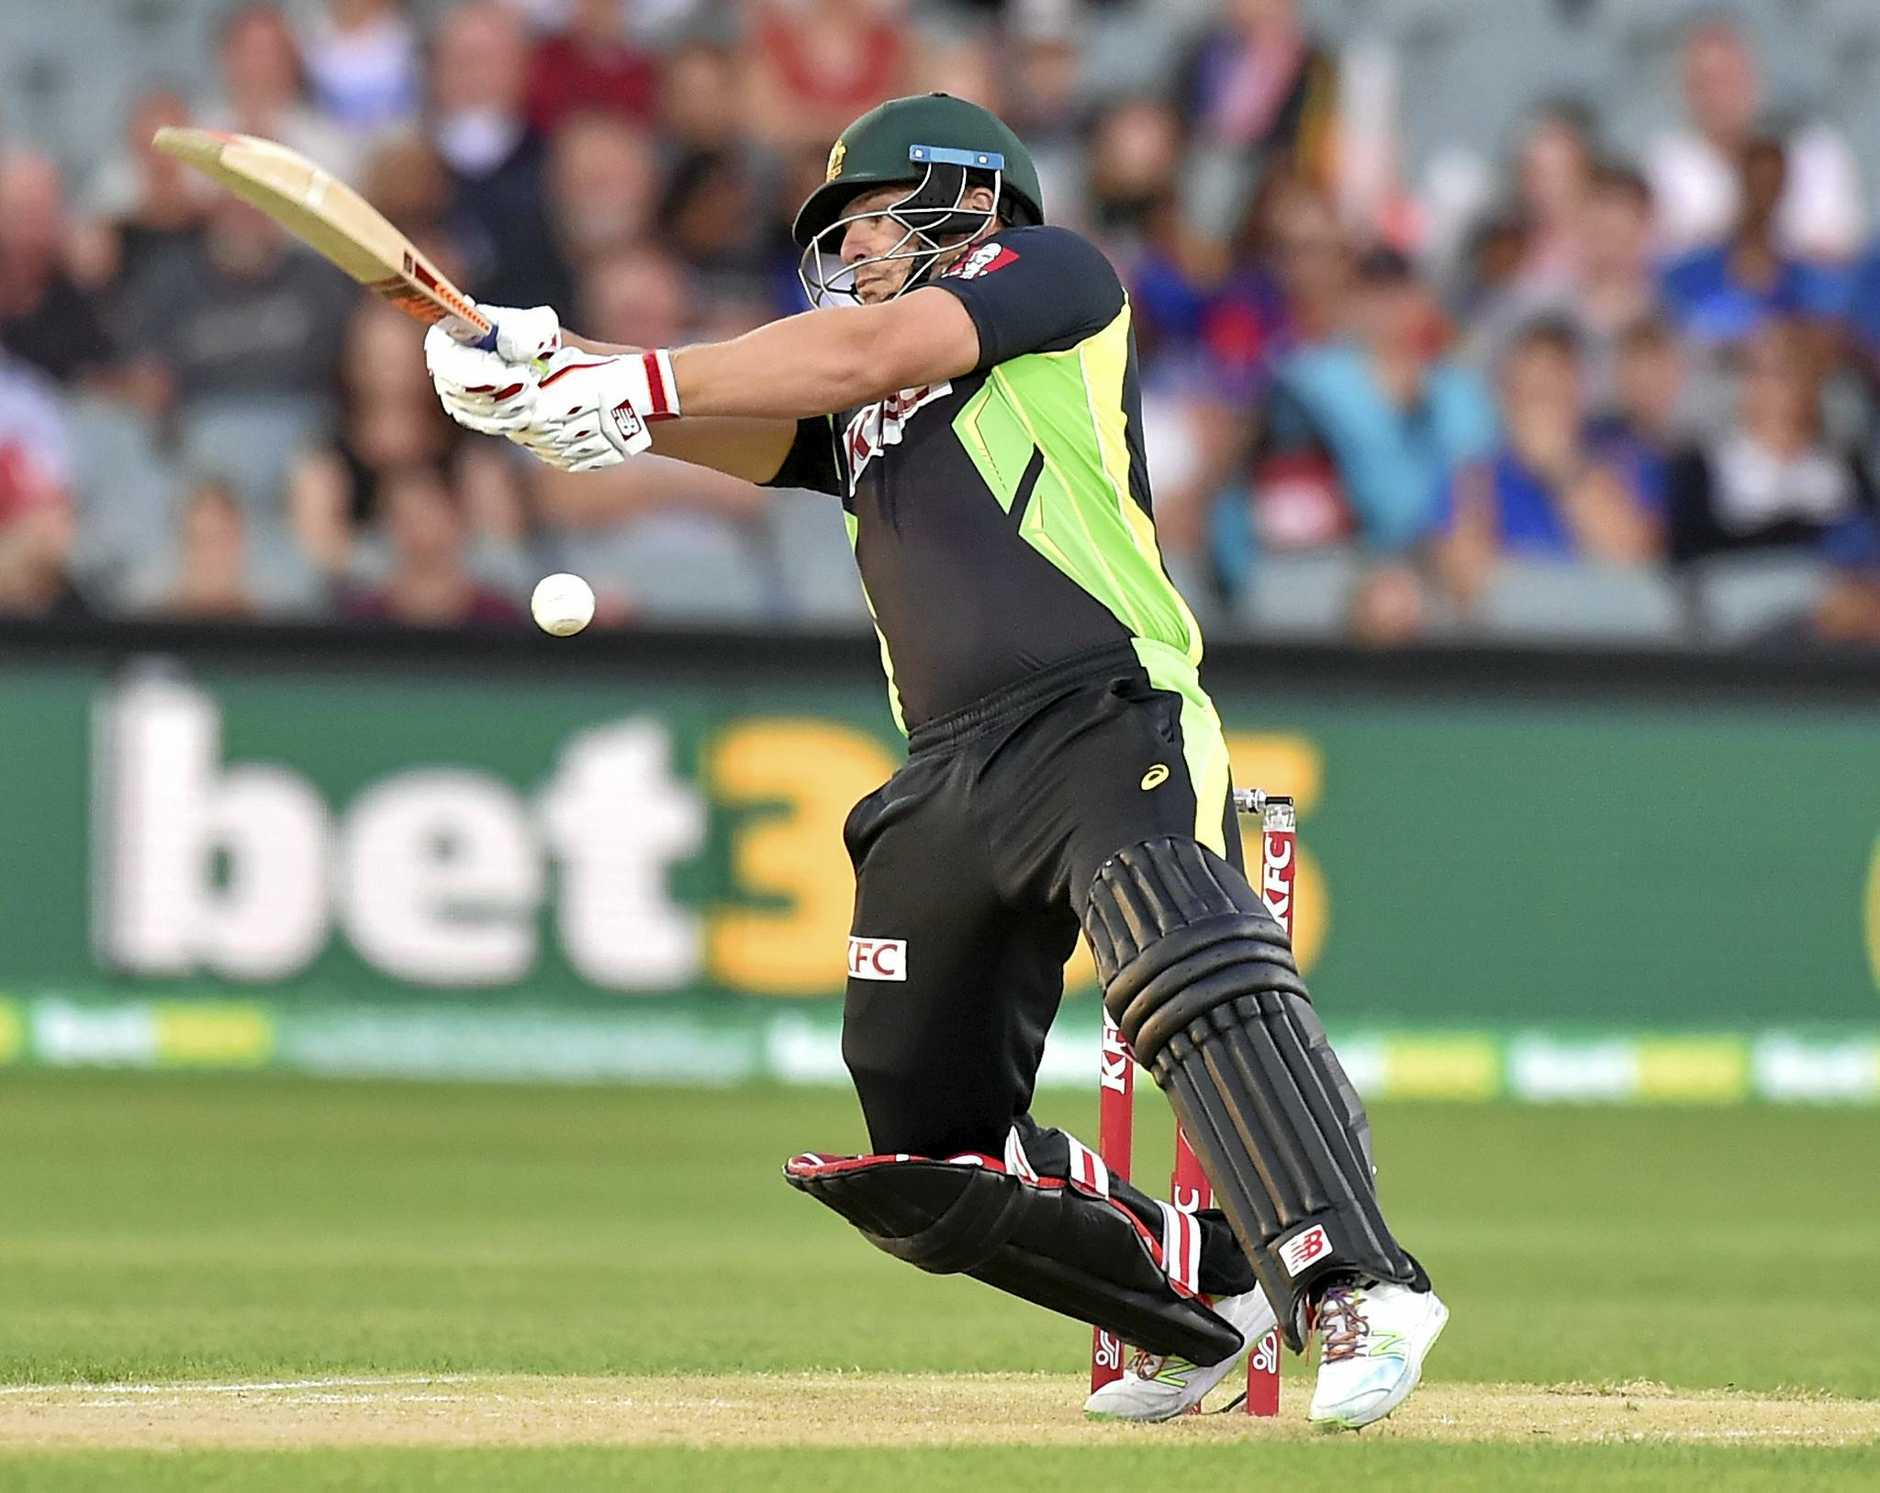 Aaron Finch hits out at the Adelaide Oval